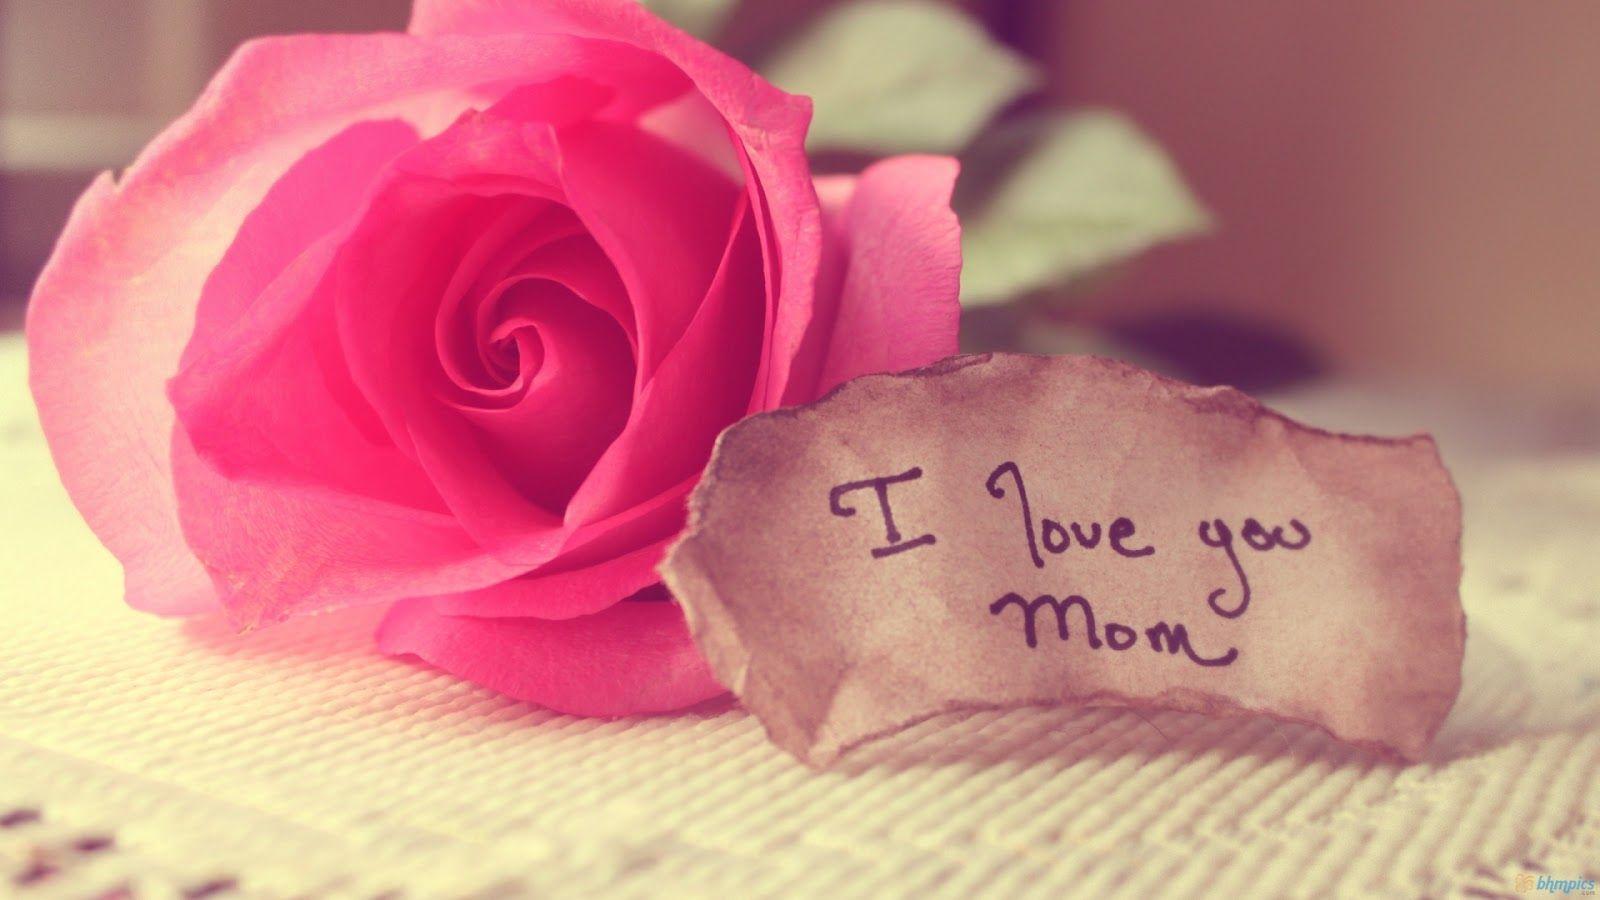 I love my mom wallpapers wallpaper cave pix for i love my mom wallpapers altavistaventures Choice Image